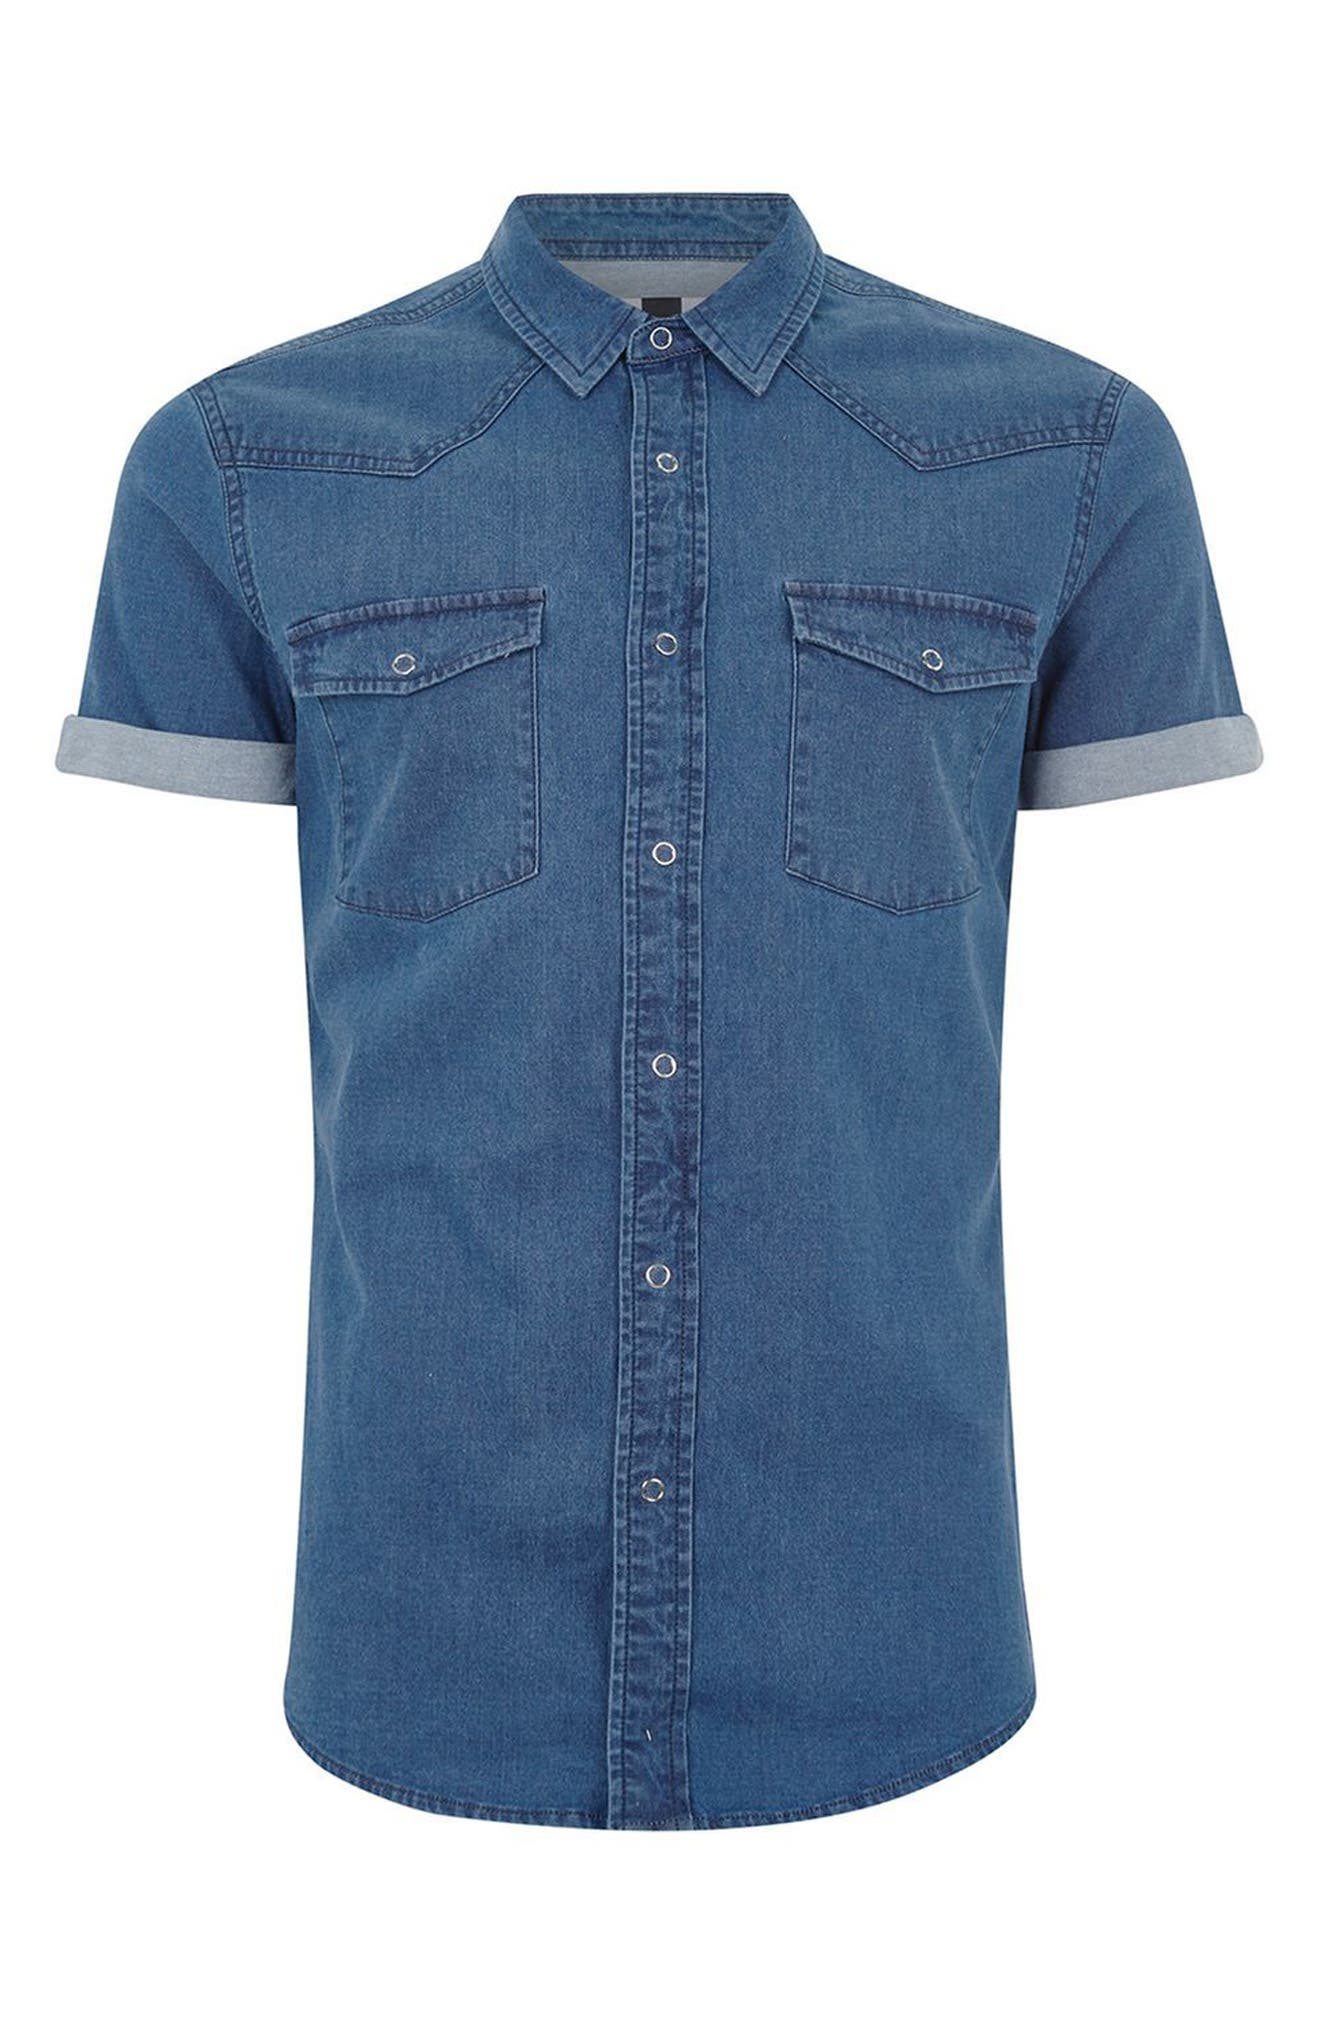 Muscle Fit Denim Shirt,                             Alternate thumbnail 4, color,                             Blue